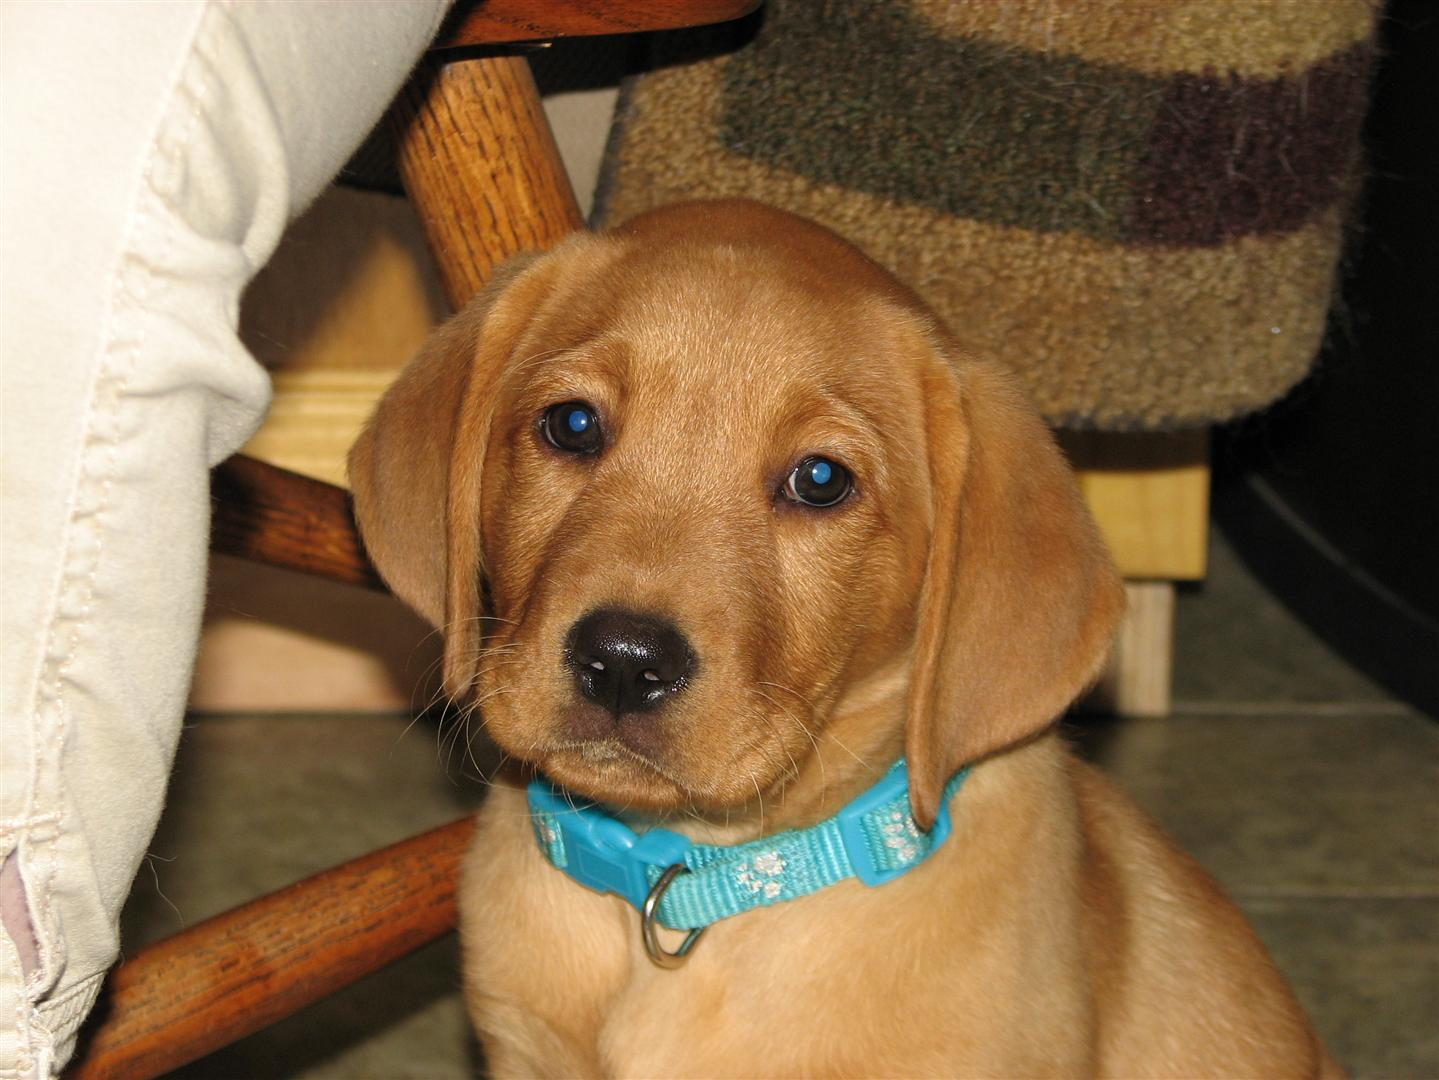 Silverwaterlabs family We sell Silver, Charcoal & Fox Red Labradors